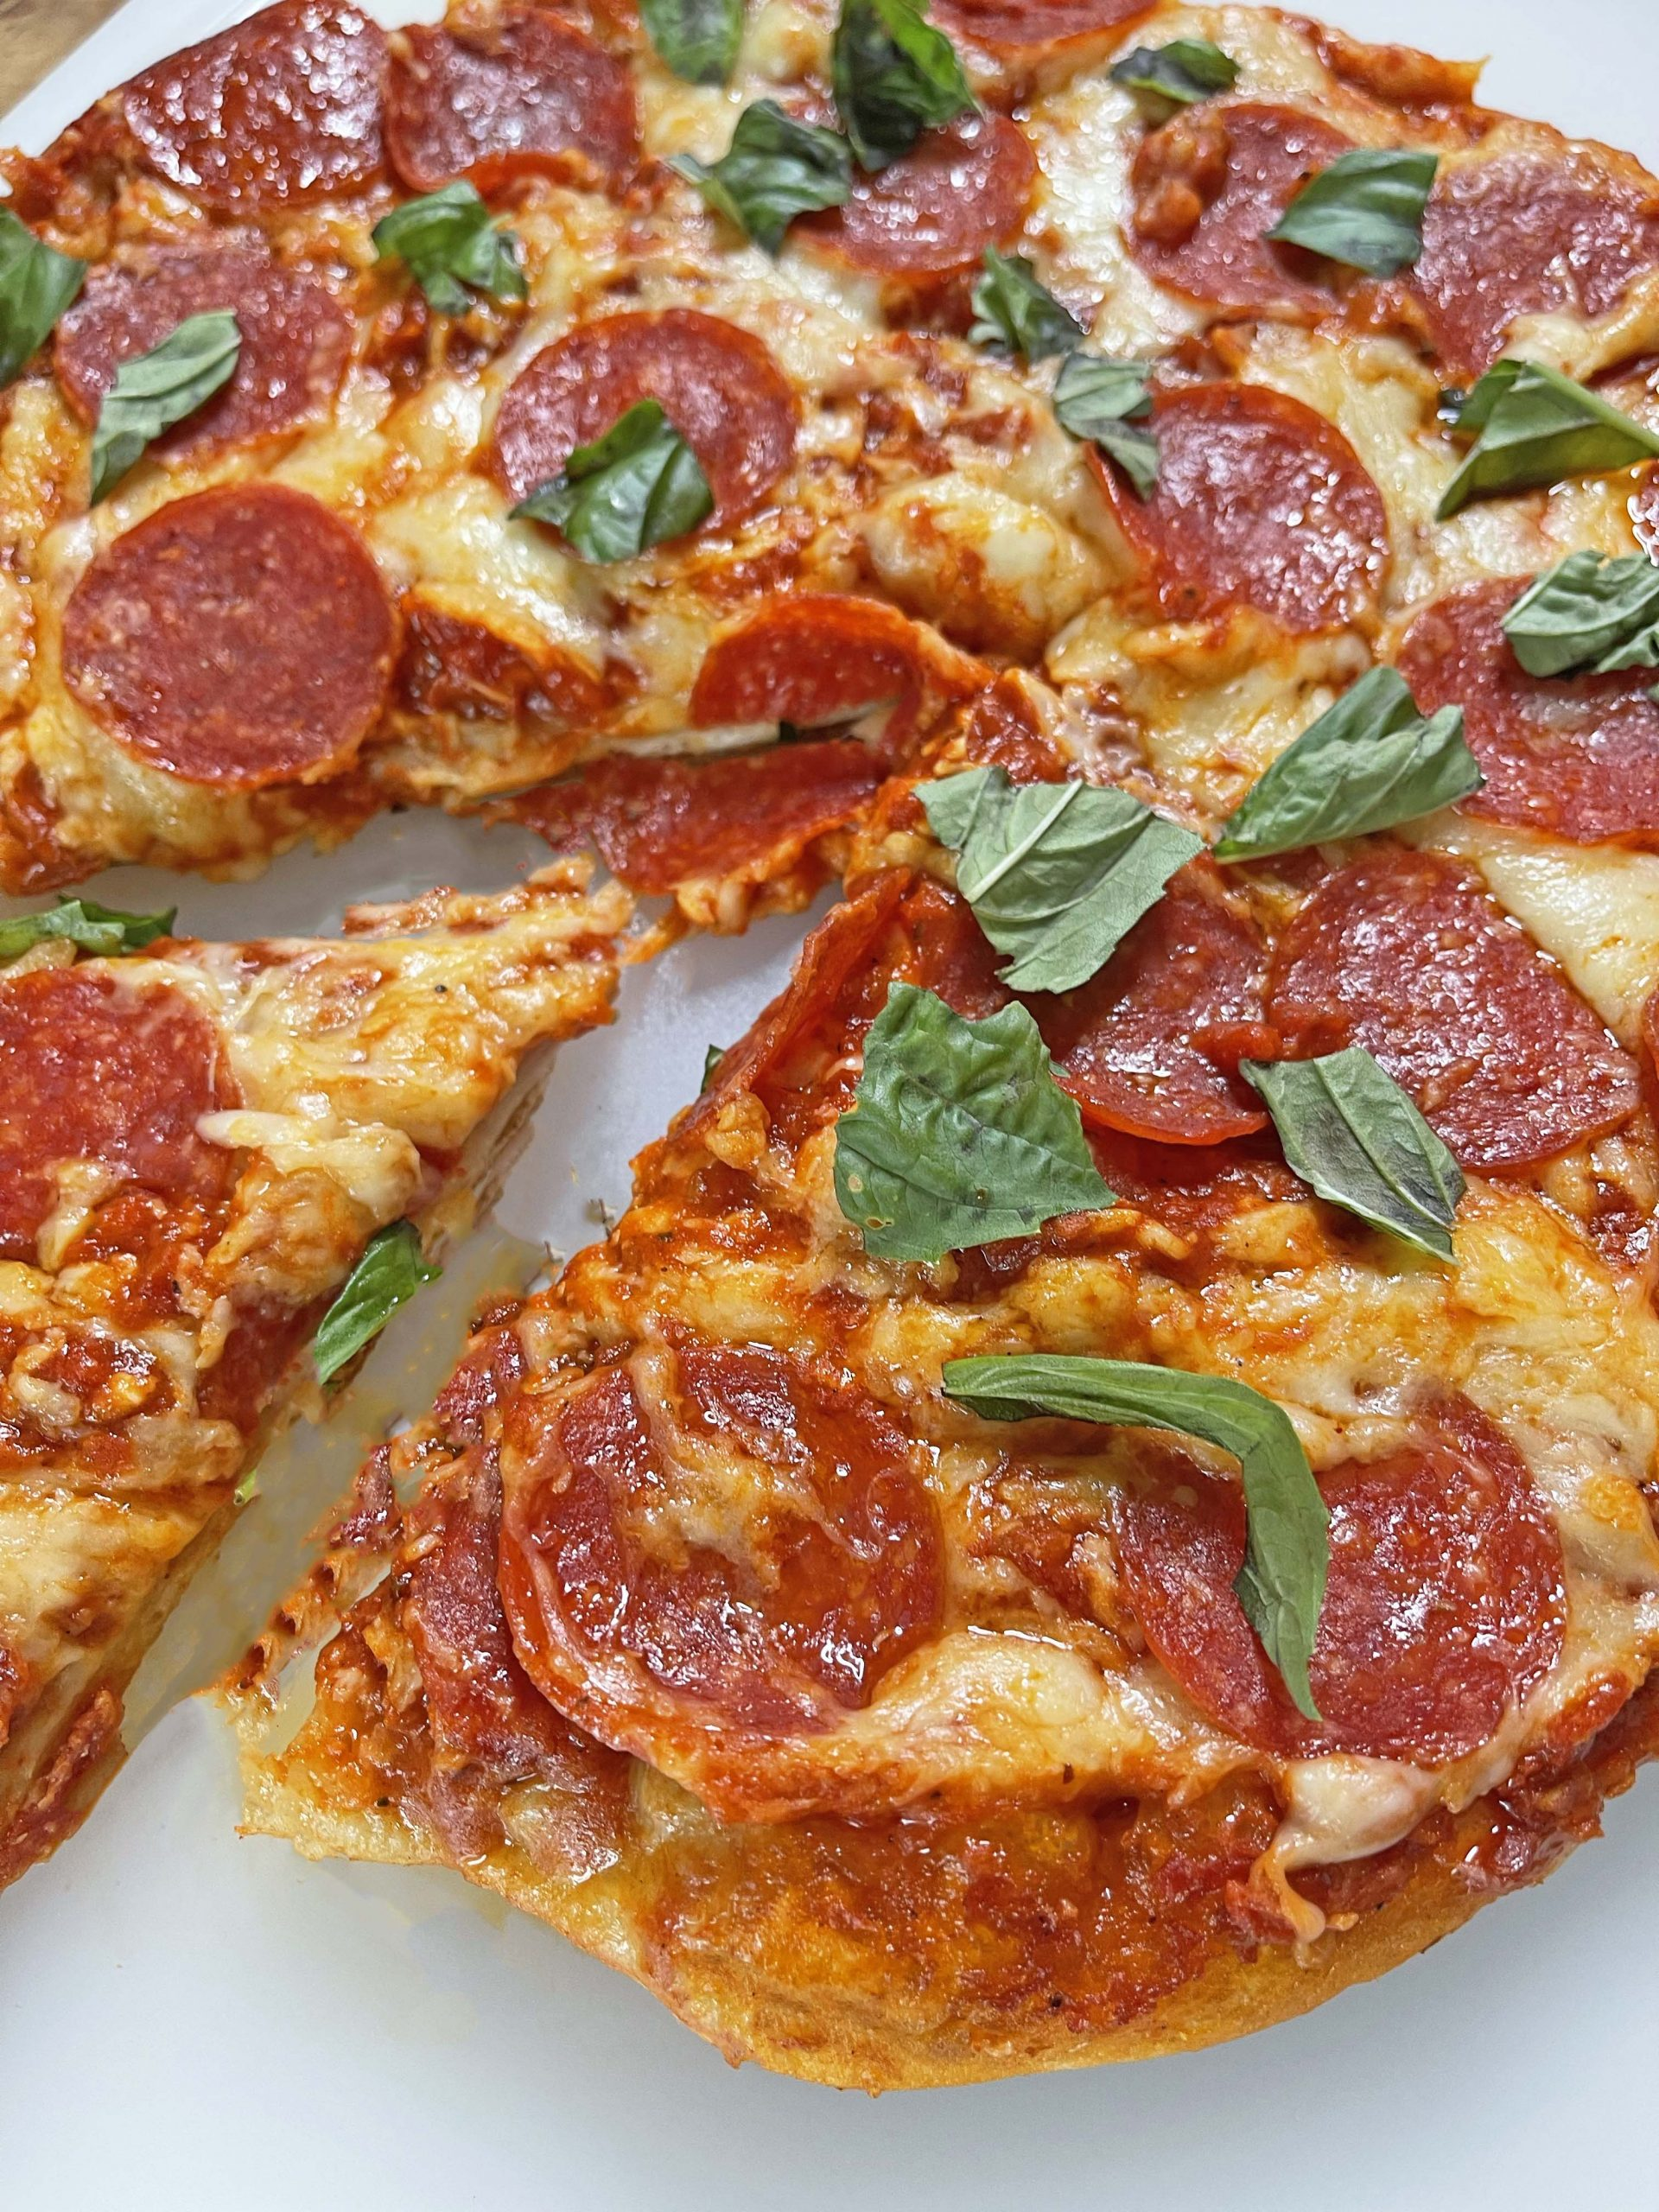 Upside Down Pizza Hack From TikTok. This is easy way to make homemade pizza. You make the pizza in a cast iron pan and its updside down so the pizza crust cooks evenly. Happy Cooking. #TikTokHacks #pizza